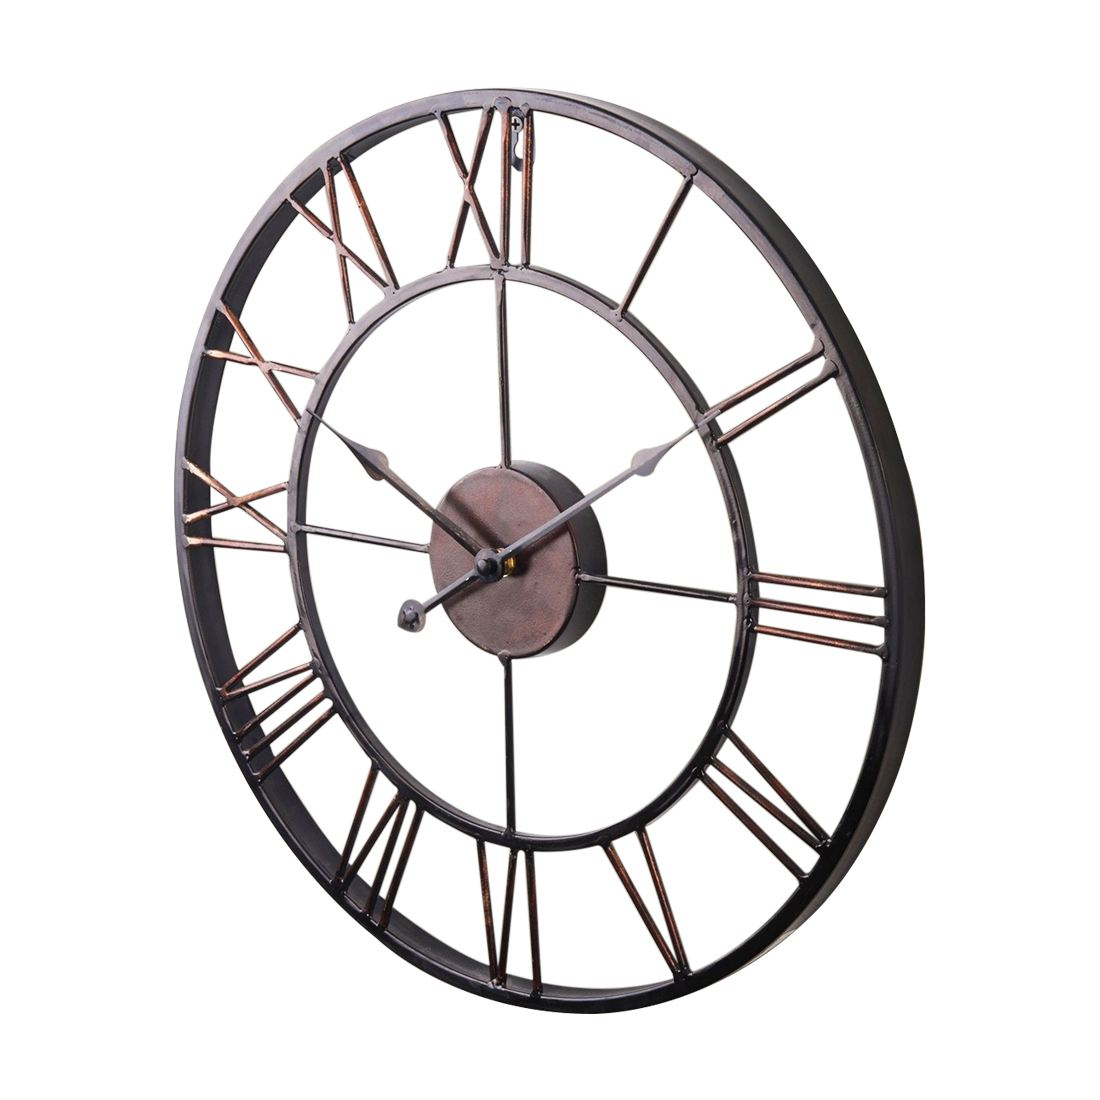 LHBL Extra Large Vintage Style Statement Metal Wall Clock Country Style - Chocolate color